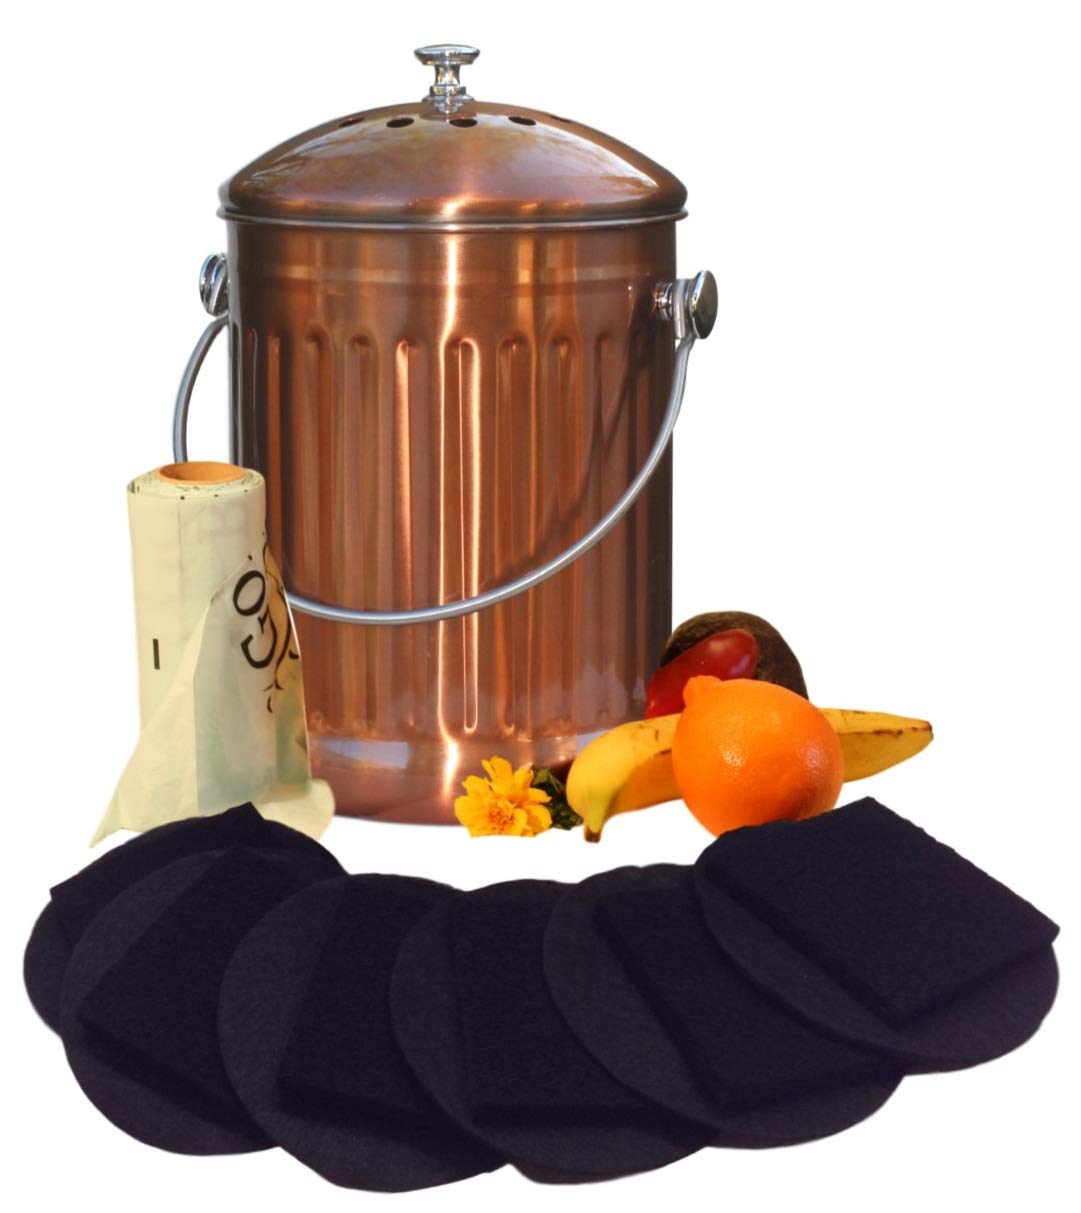 Kitchen Compost Pail Bin for Countertop - Large Capacity 1.5 Gallon Food Scrap Container, Leak proof Copper Coated Stainless Steel - Includes 1 Year of Charcoal Filters & Compost Bags